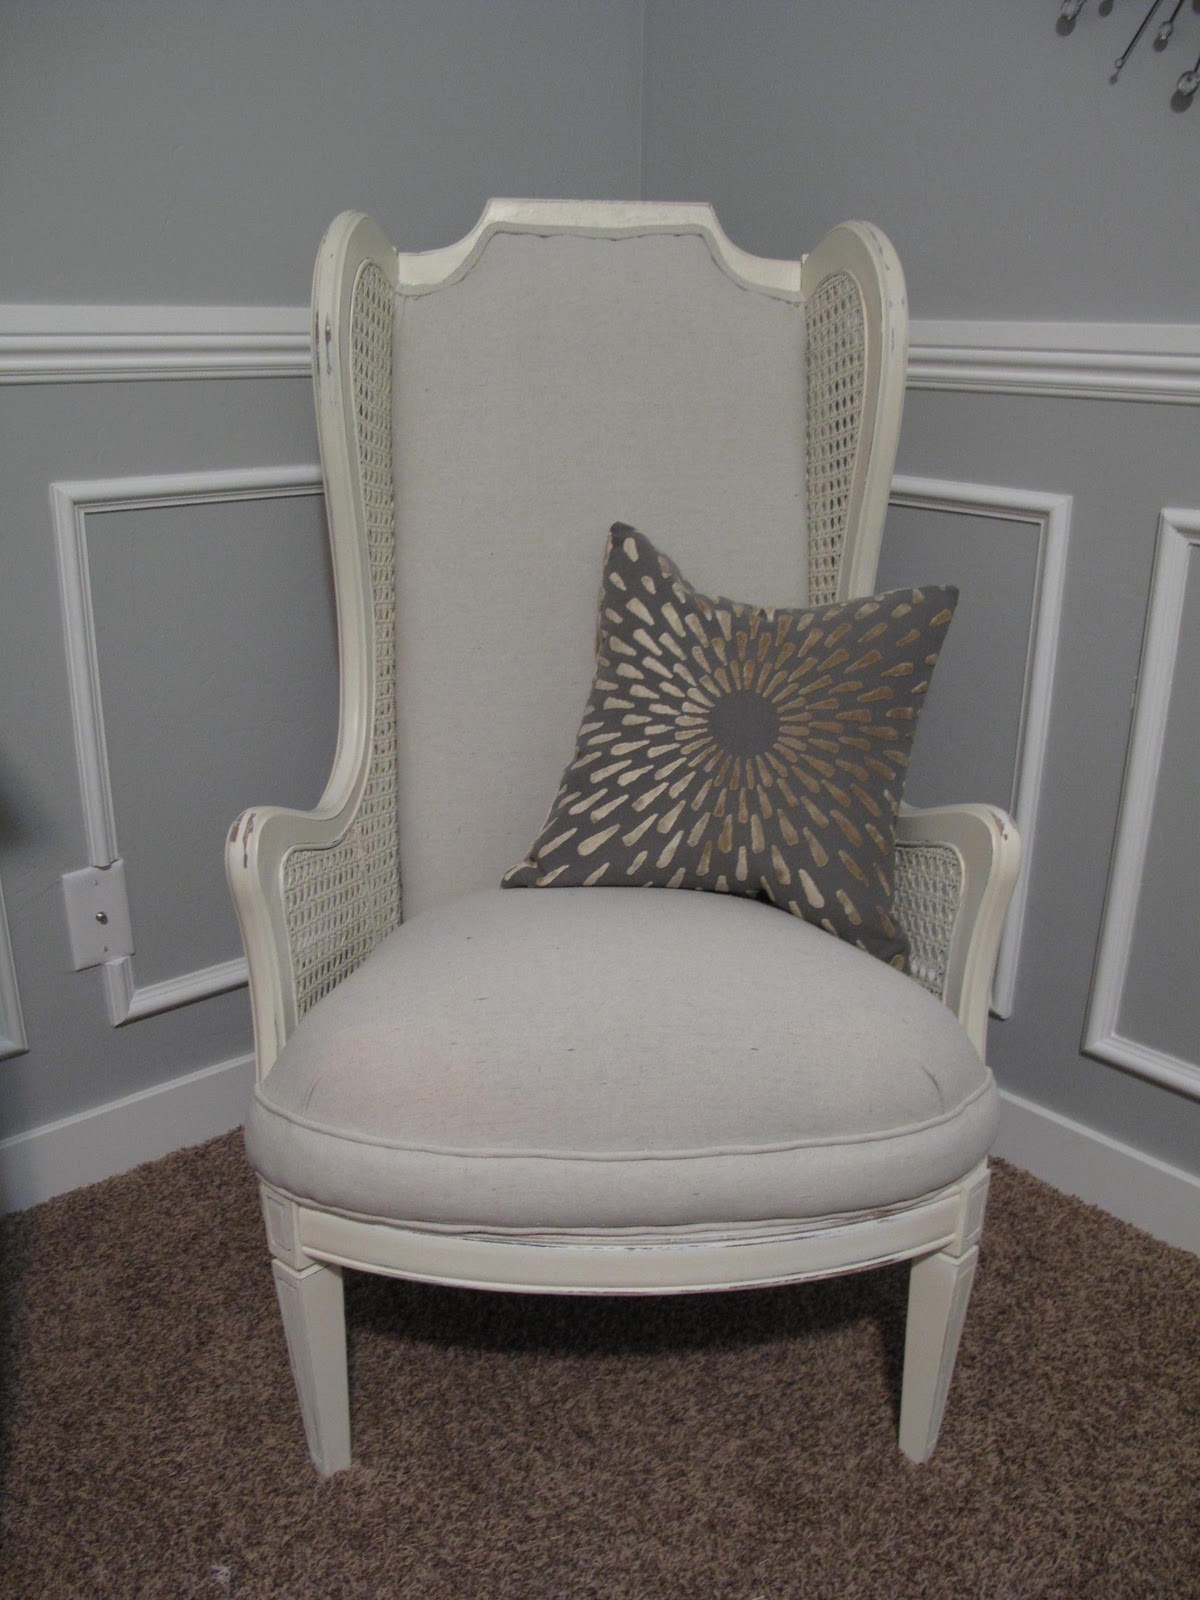 & Little Miss Penny Wenny: How to Re-upholster with a Drop Cloth- Part 1